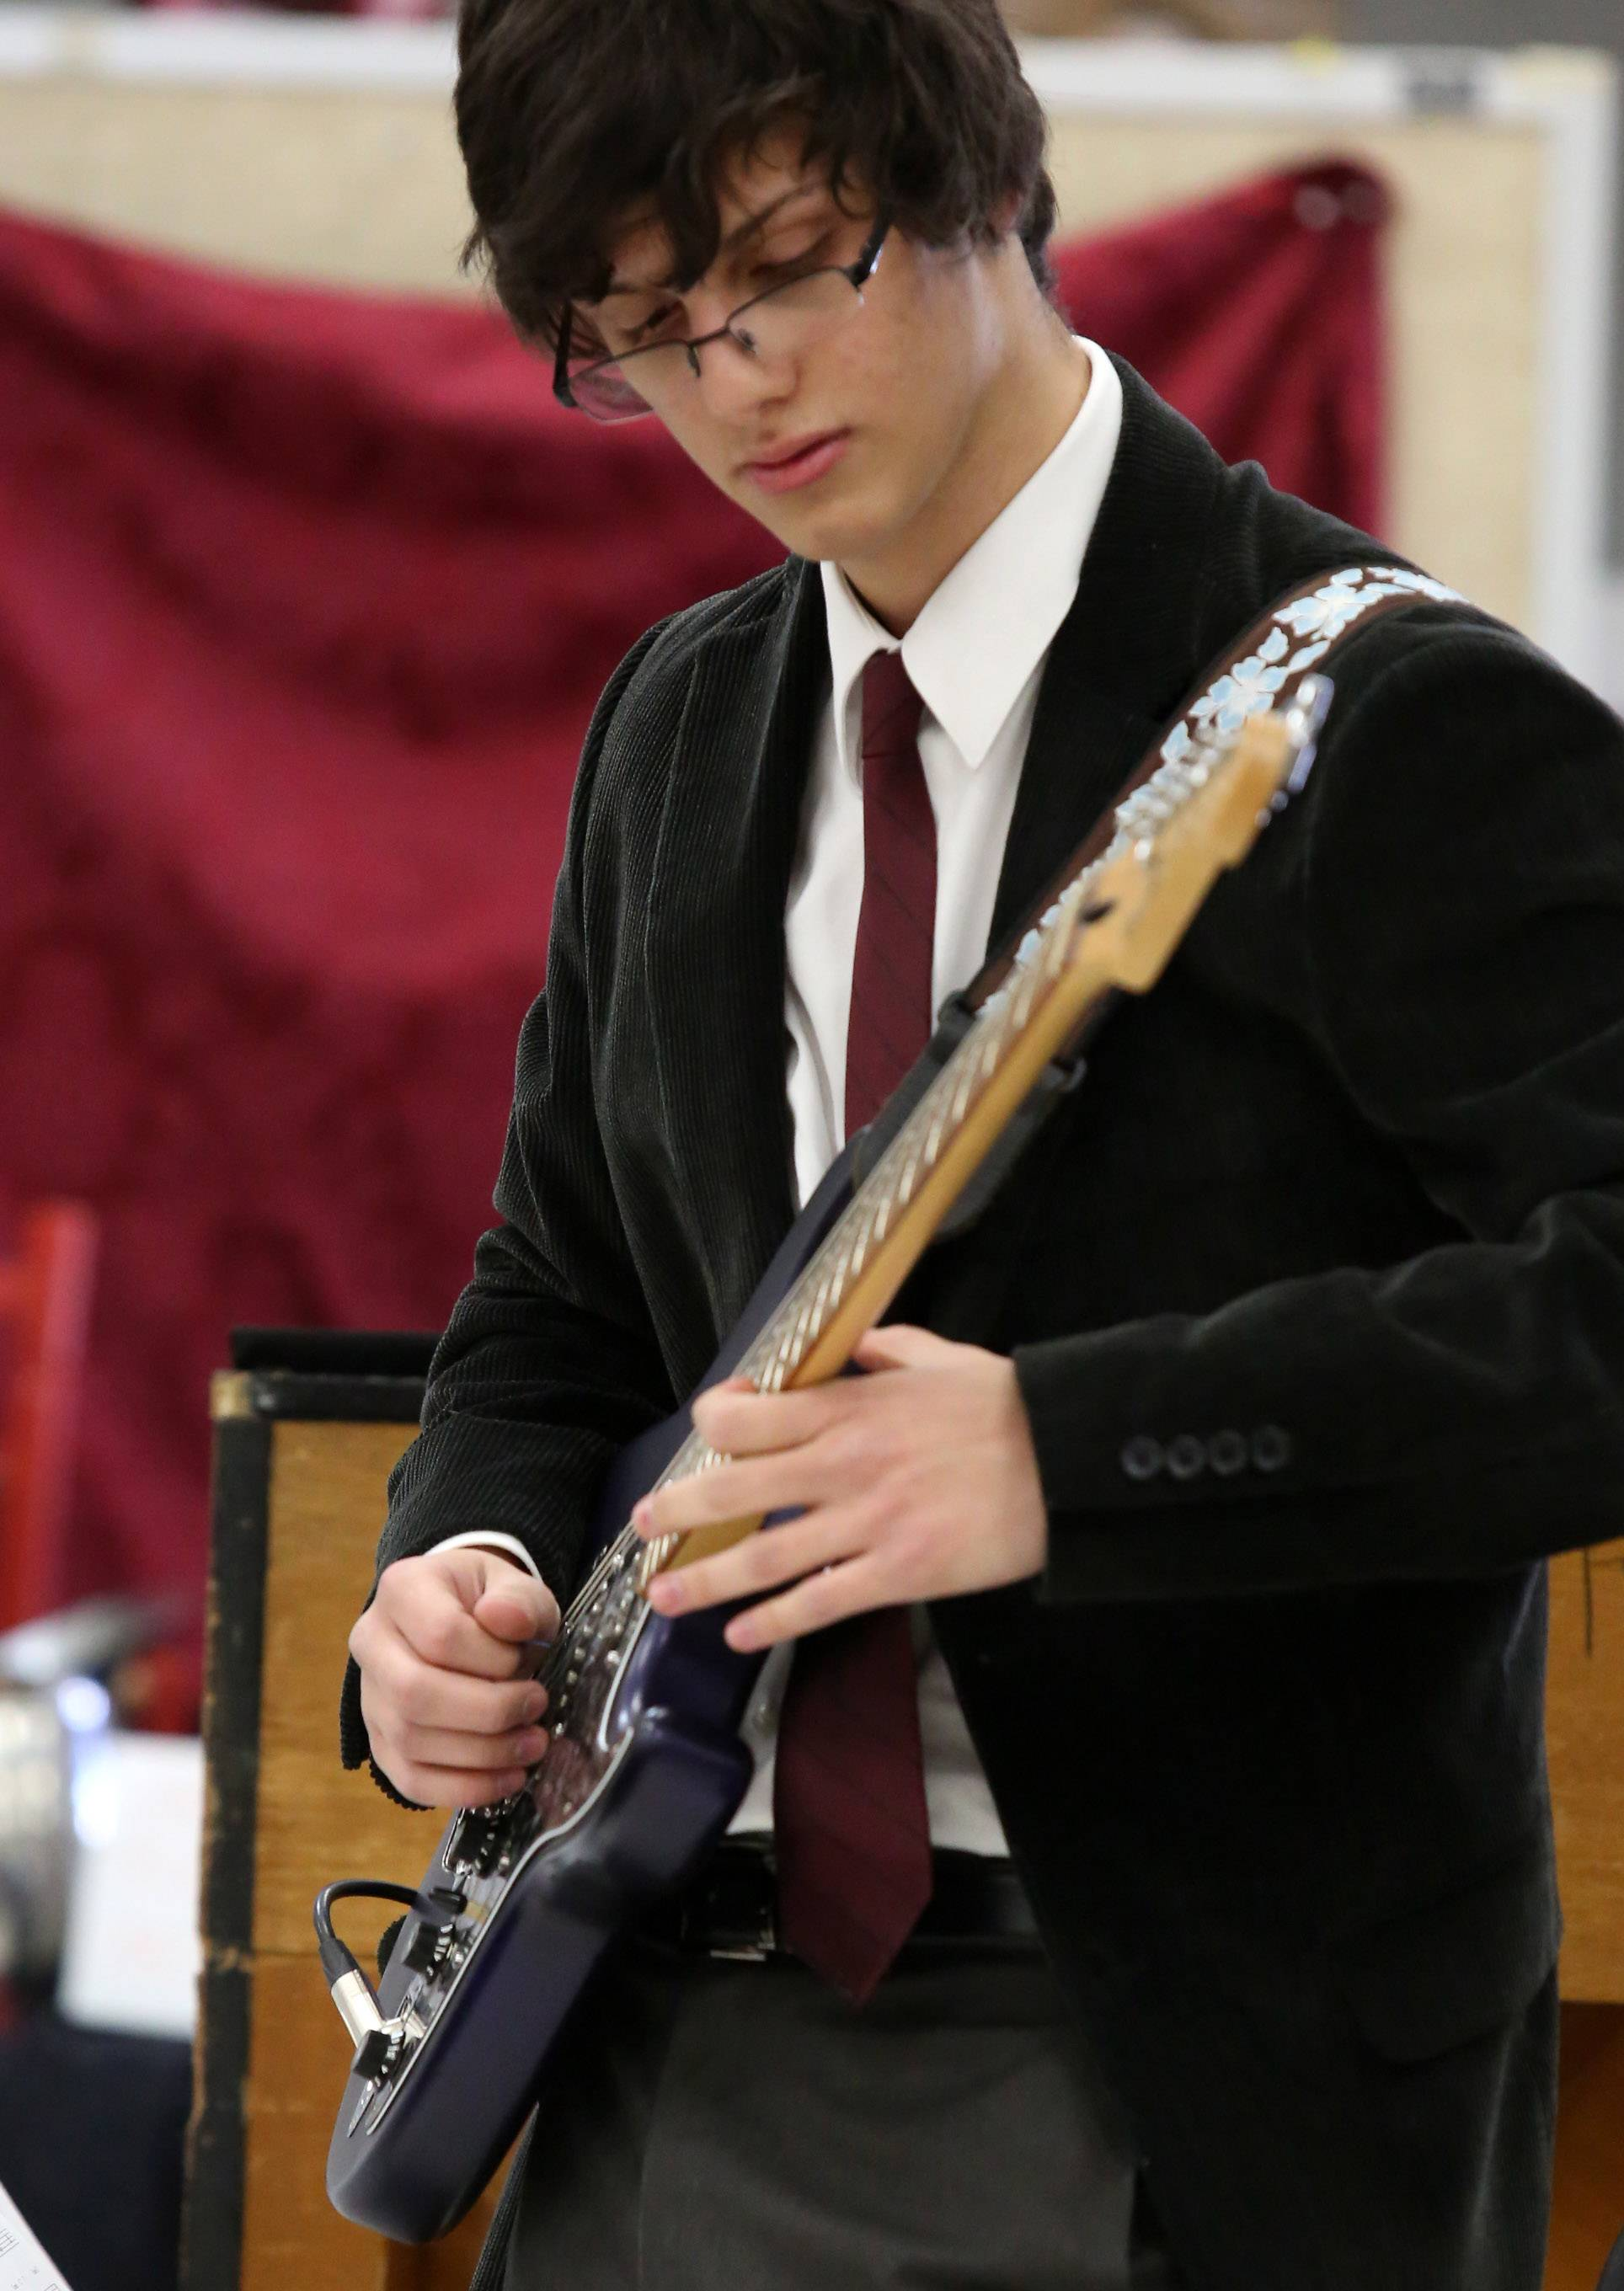 Prussian Gueorguiev plays the guitar in Warren High School's jazz combo directed by Chris Madsen, performs at the 29th annual Jazz in the Meadows program on Saturday in the art room at Rolling Meadows High School.